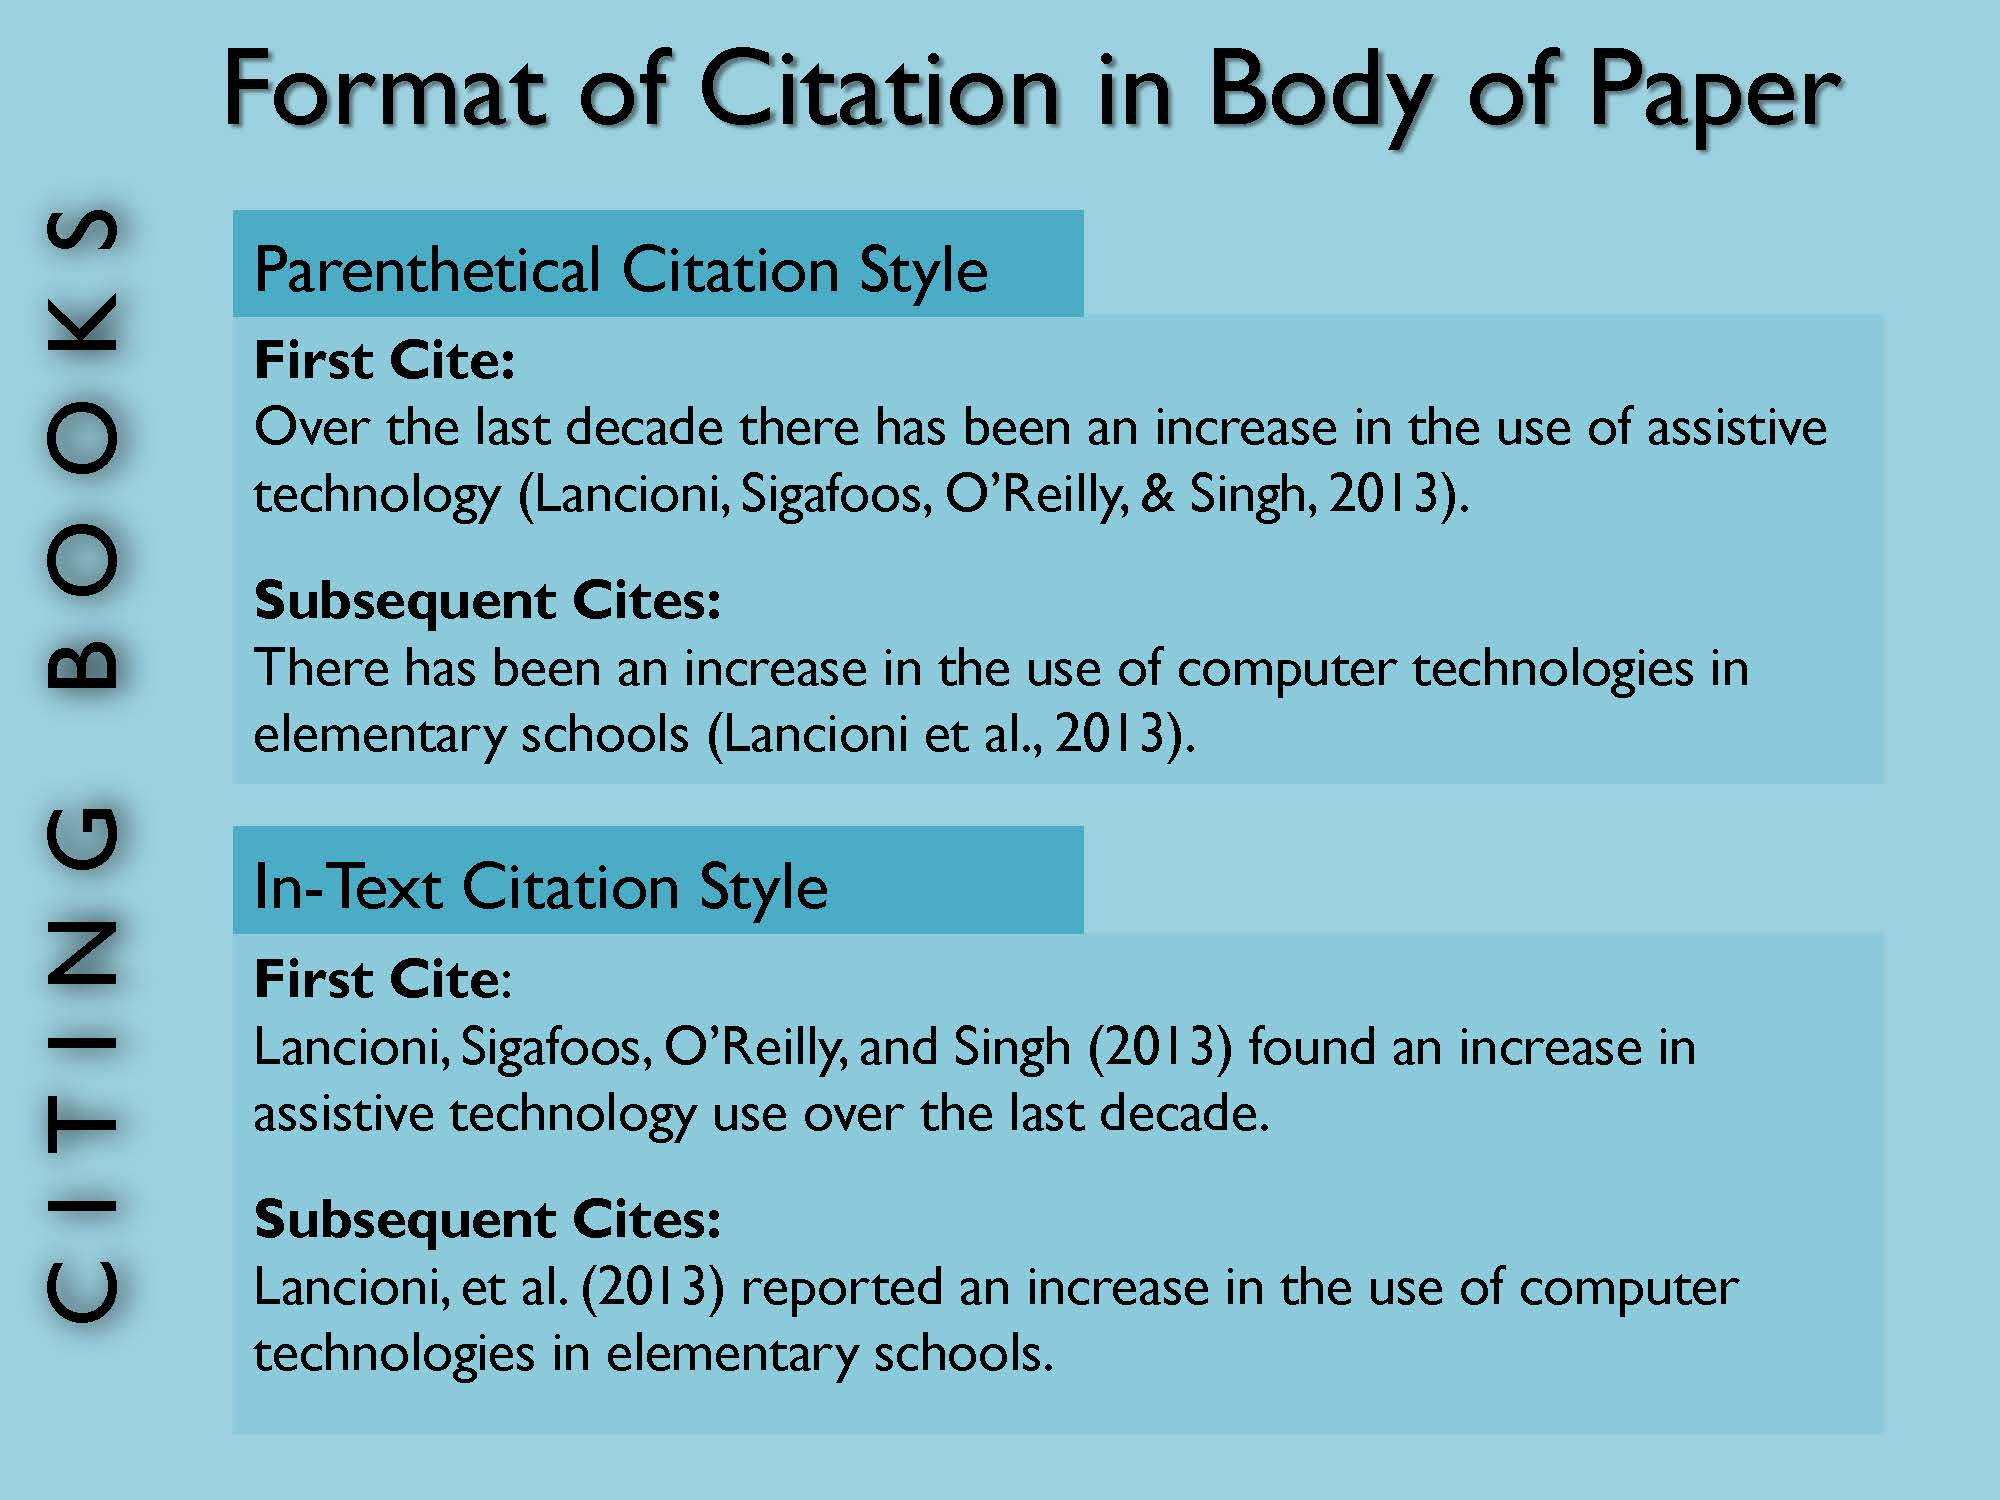 How do you cite references in APA format for a essay?